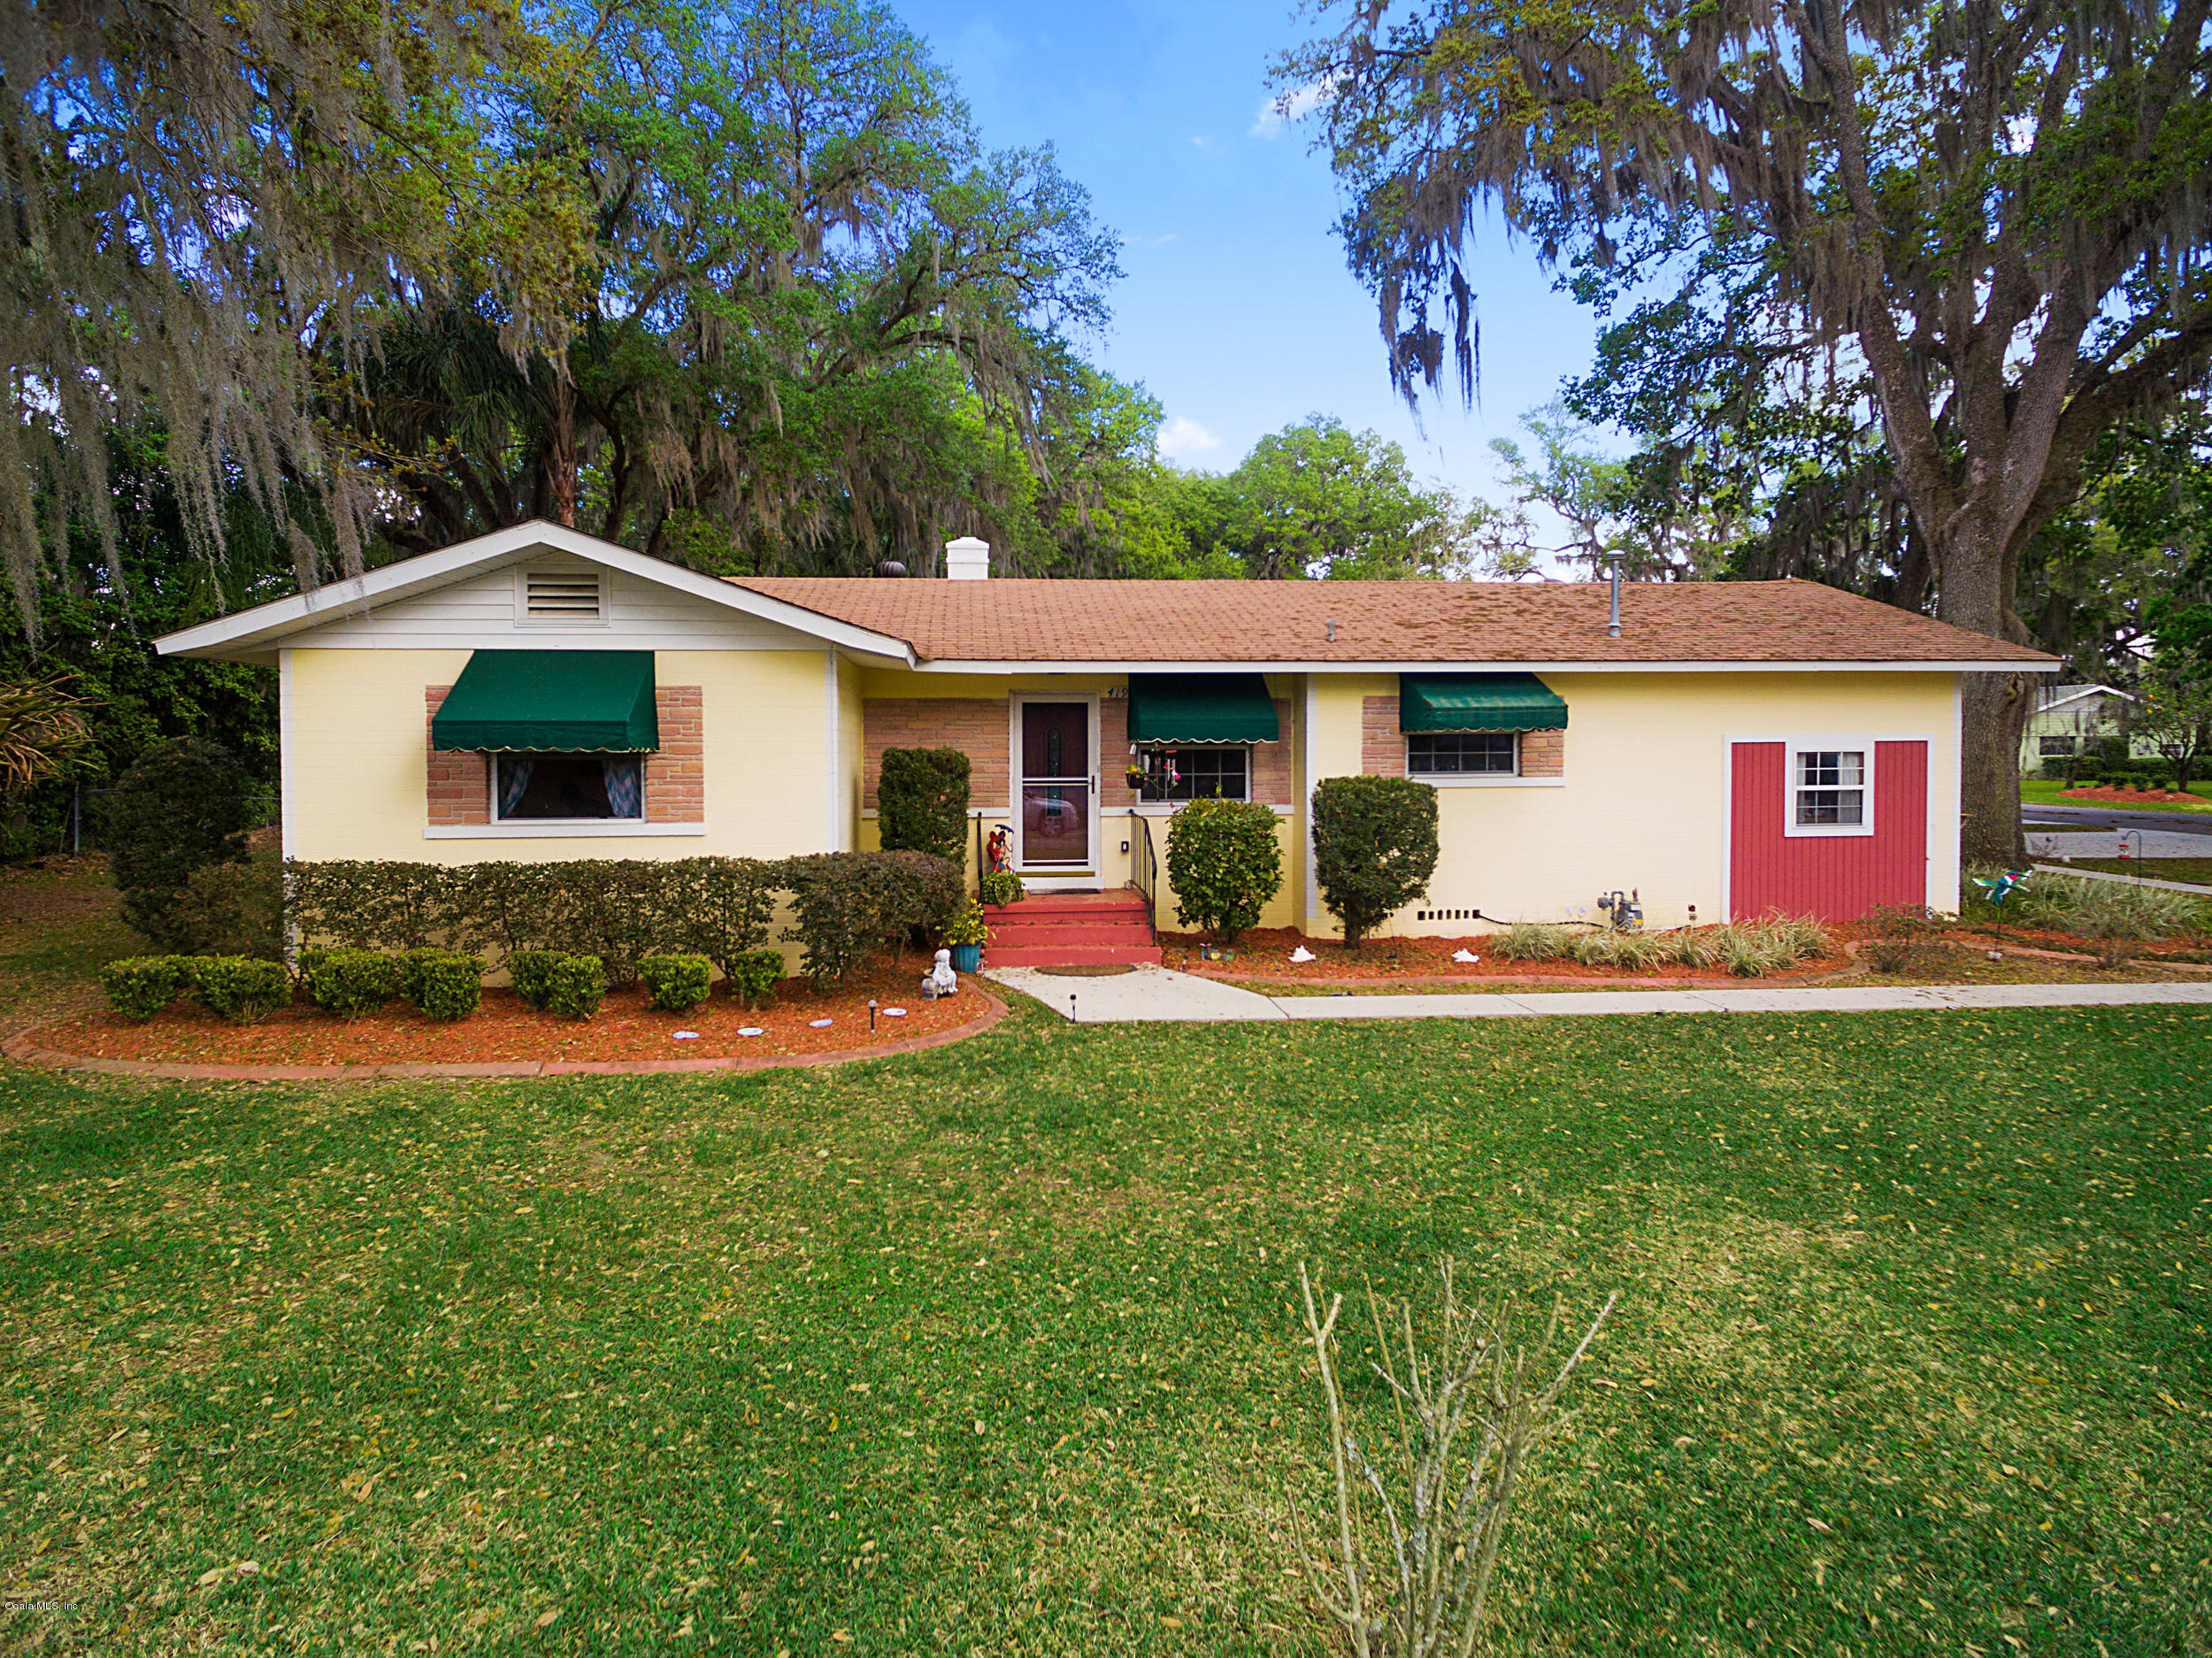 419 SE 28TH AVENUE, OCALA, FL 34471